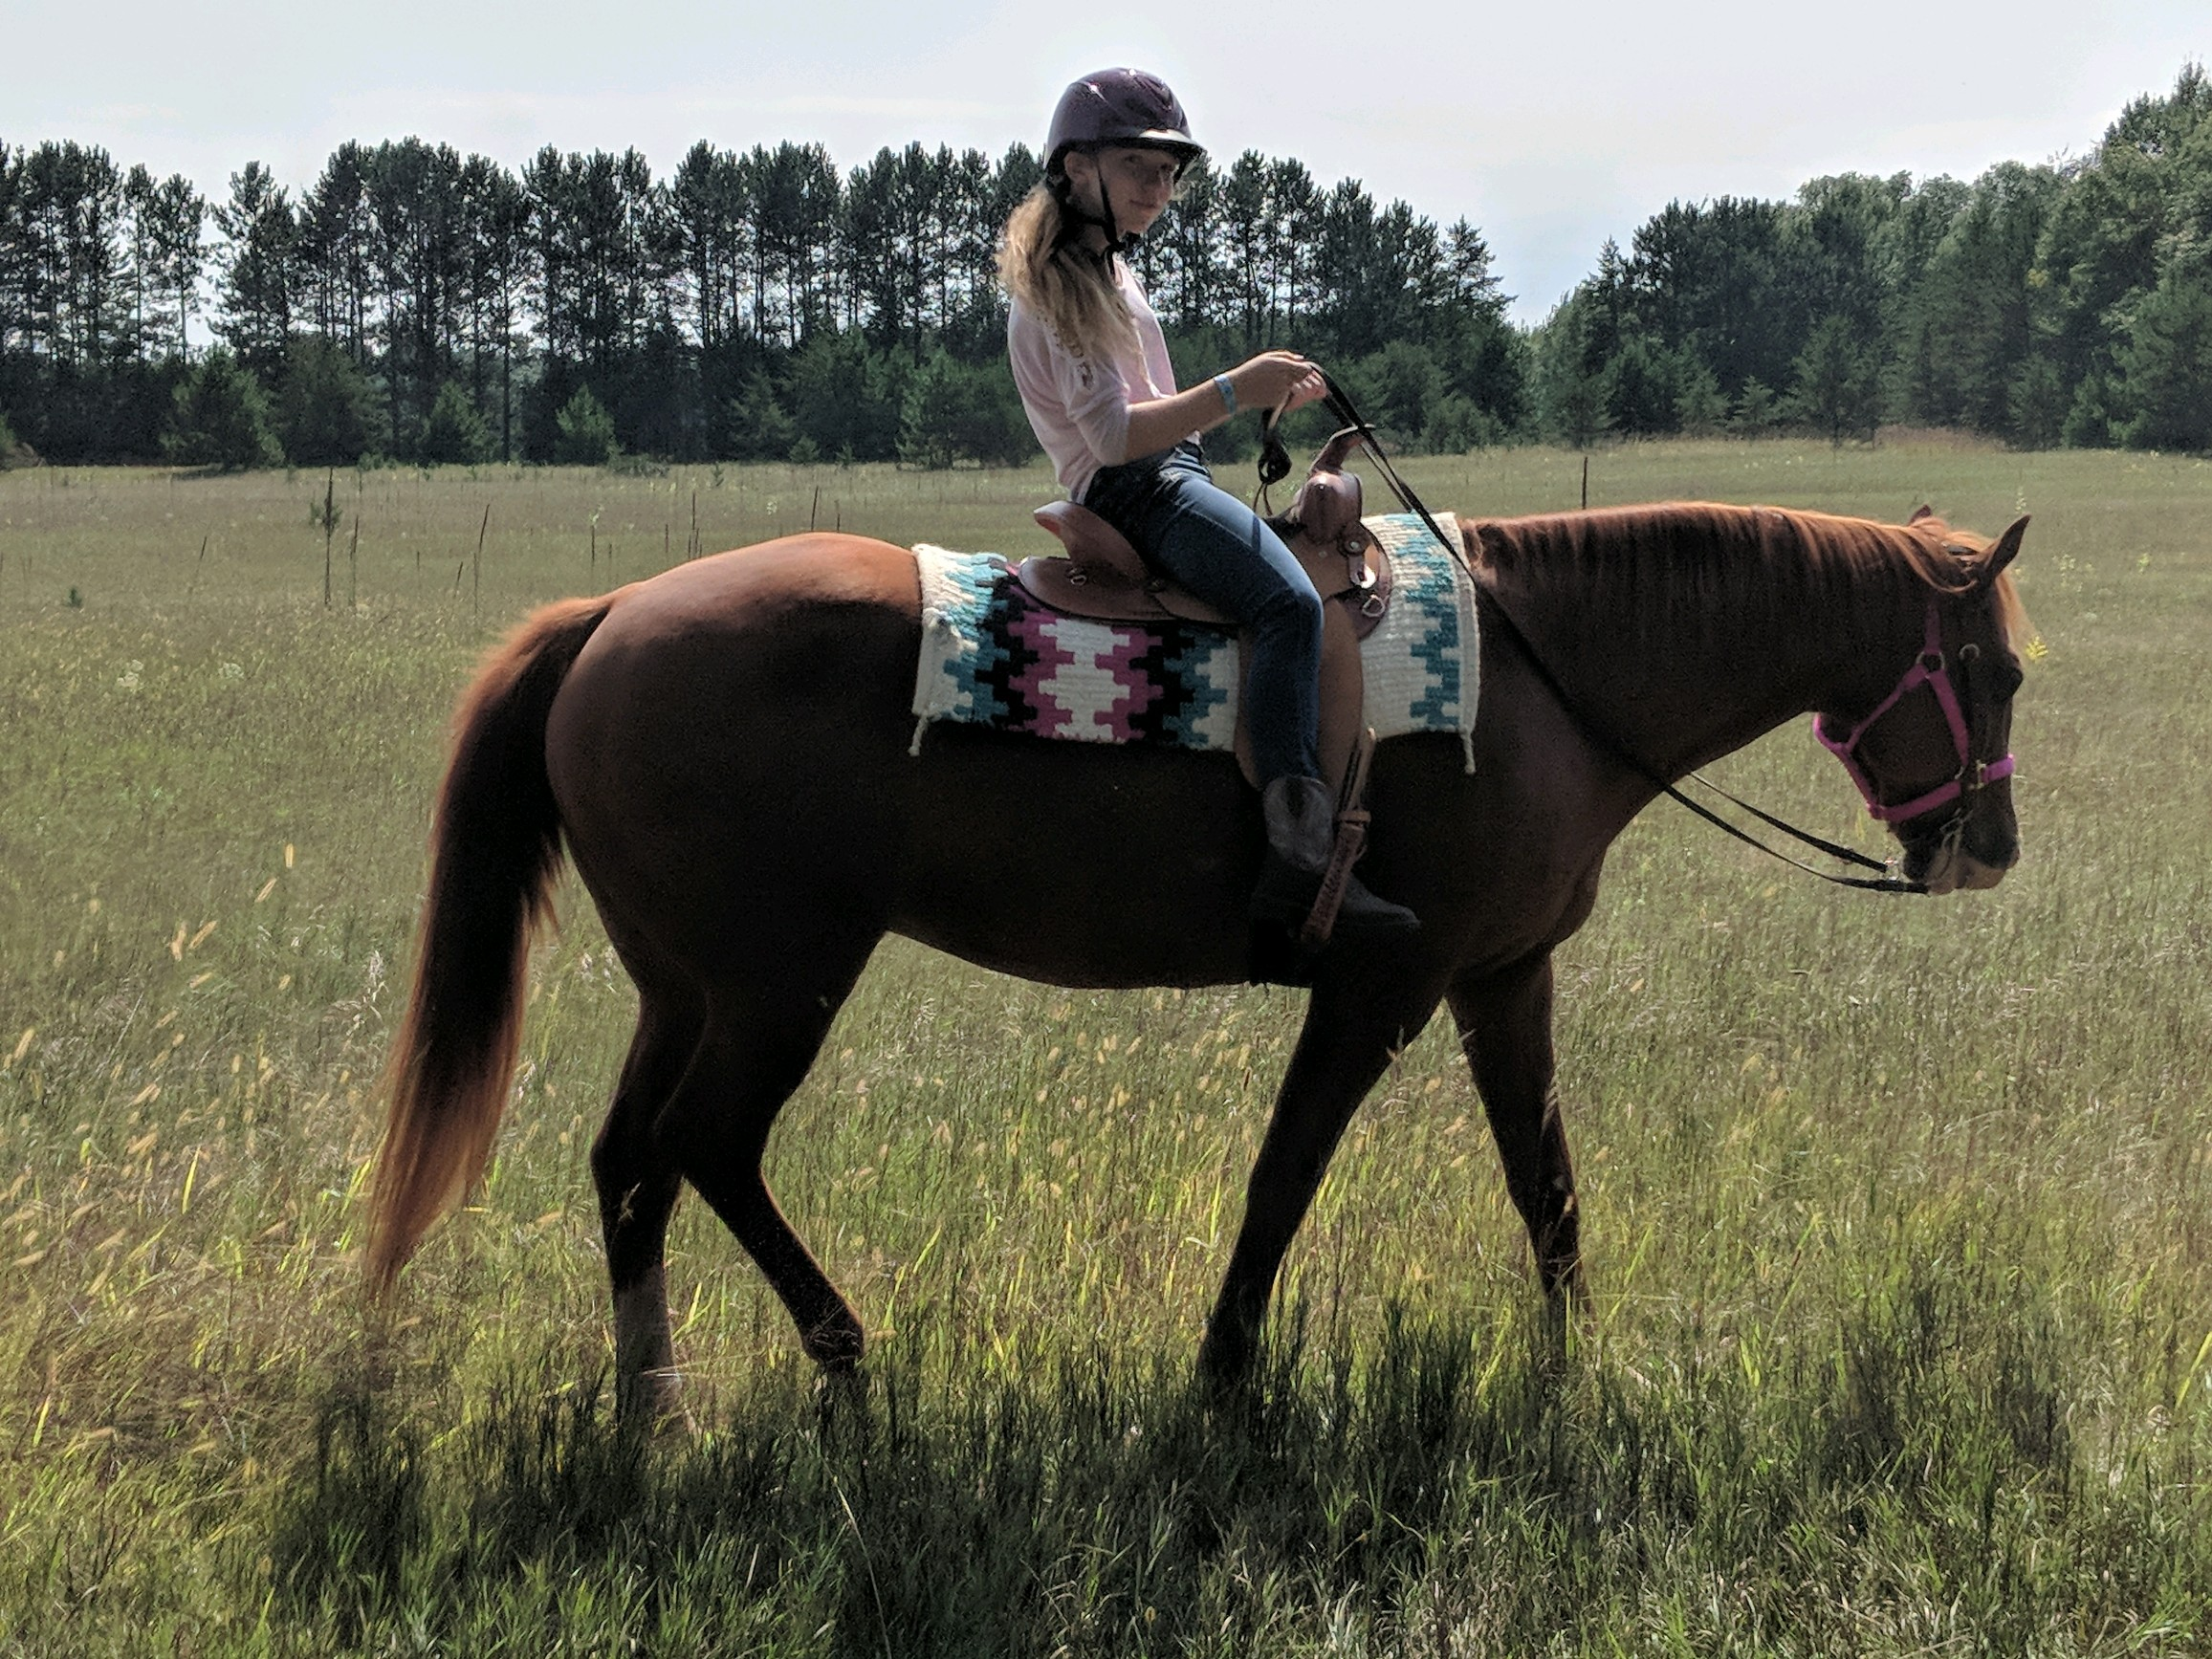 loves to ride